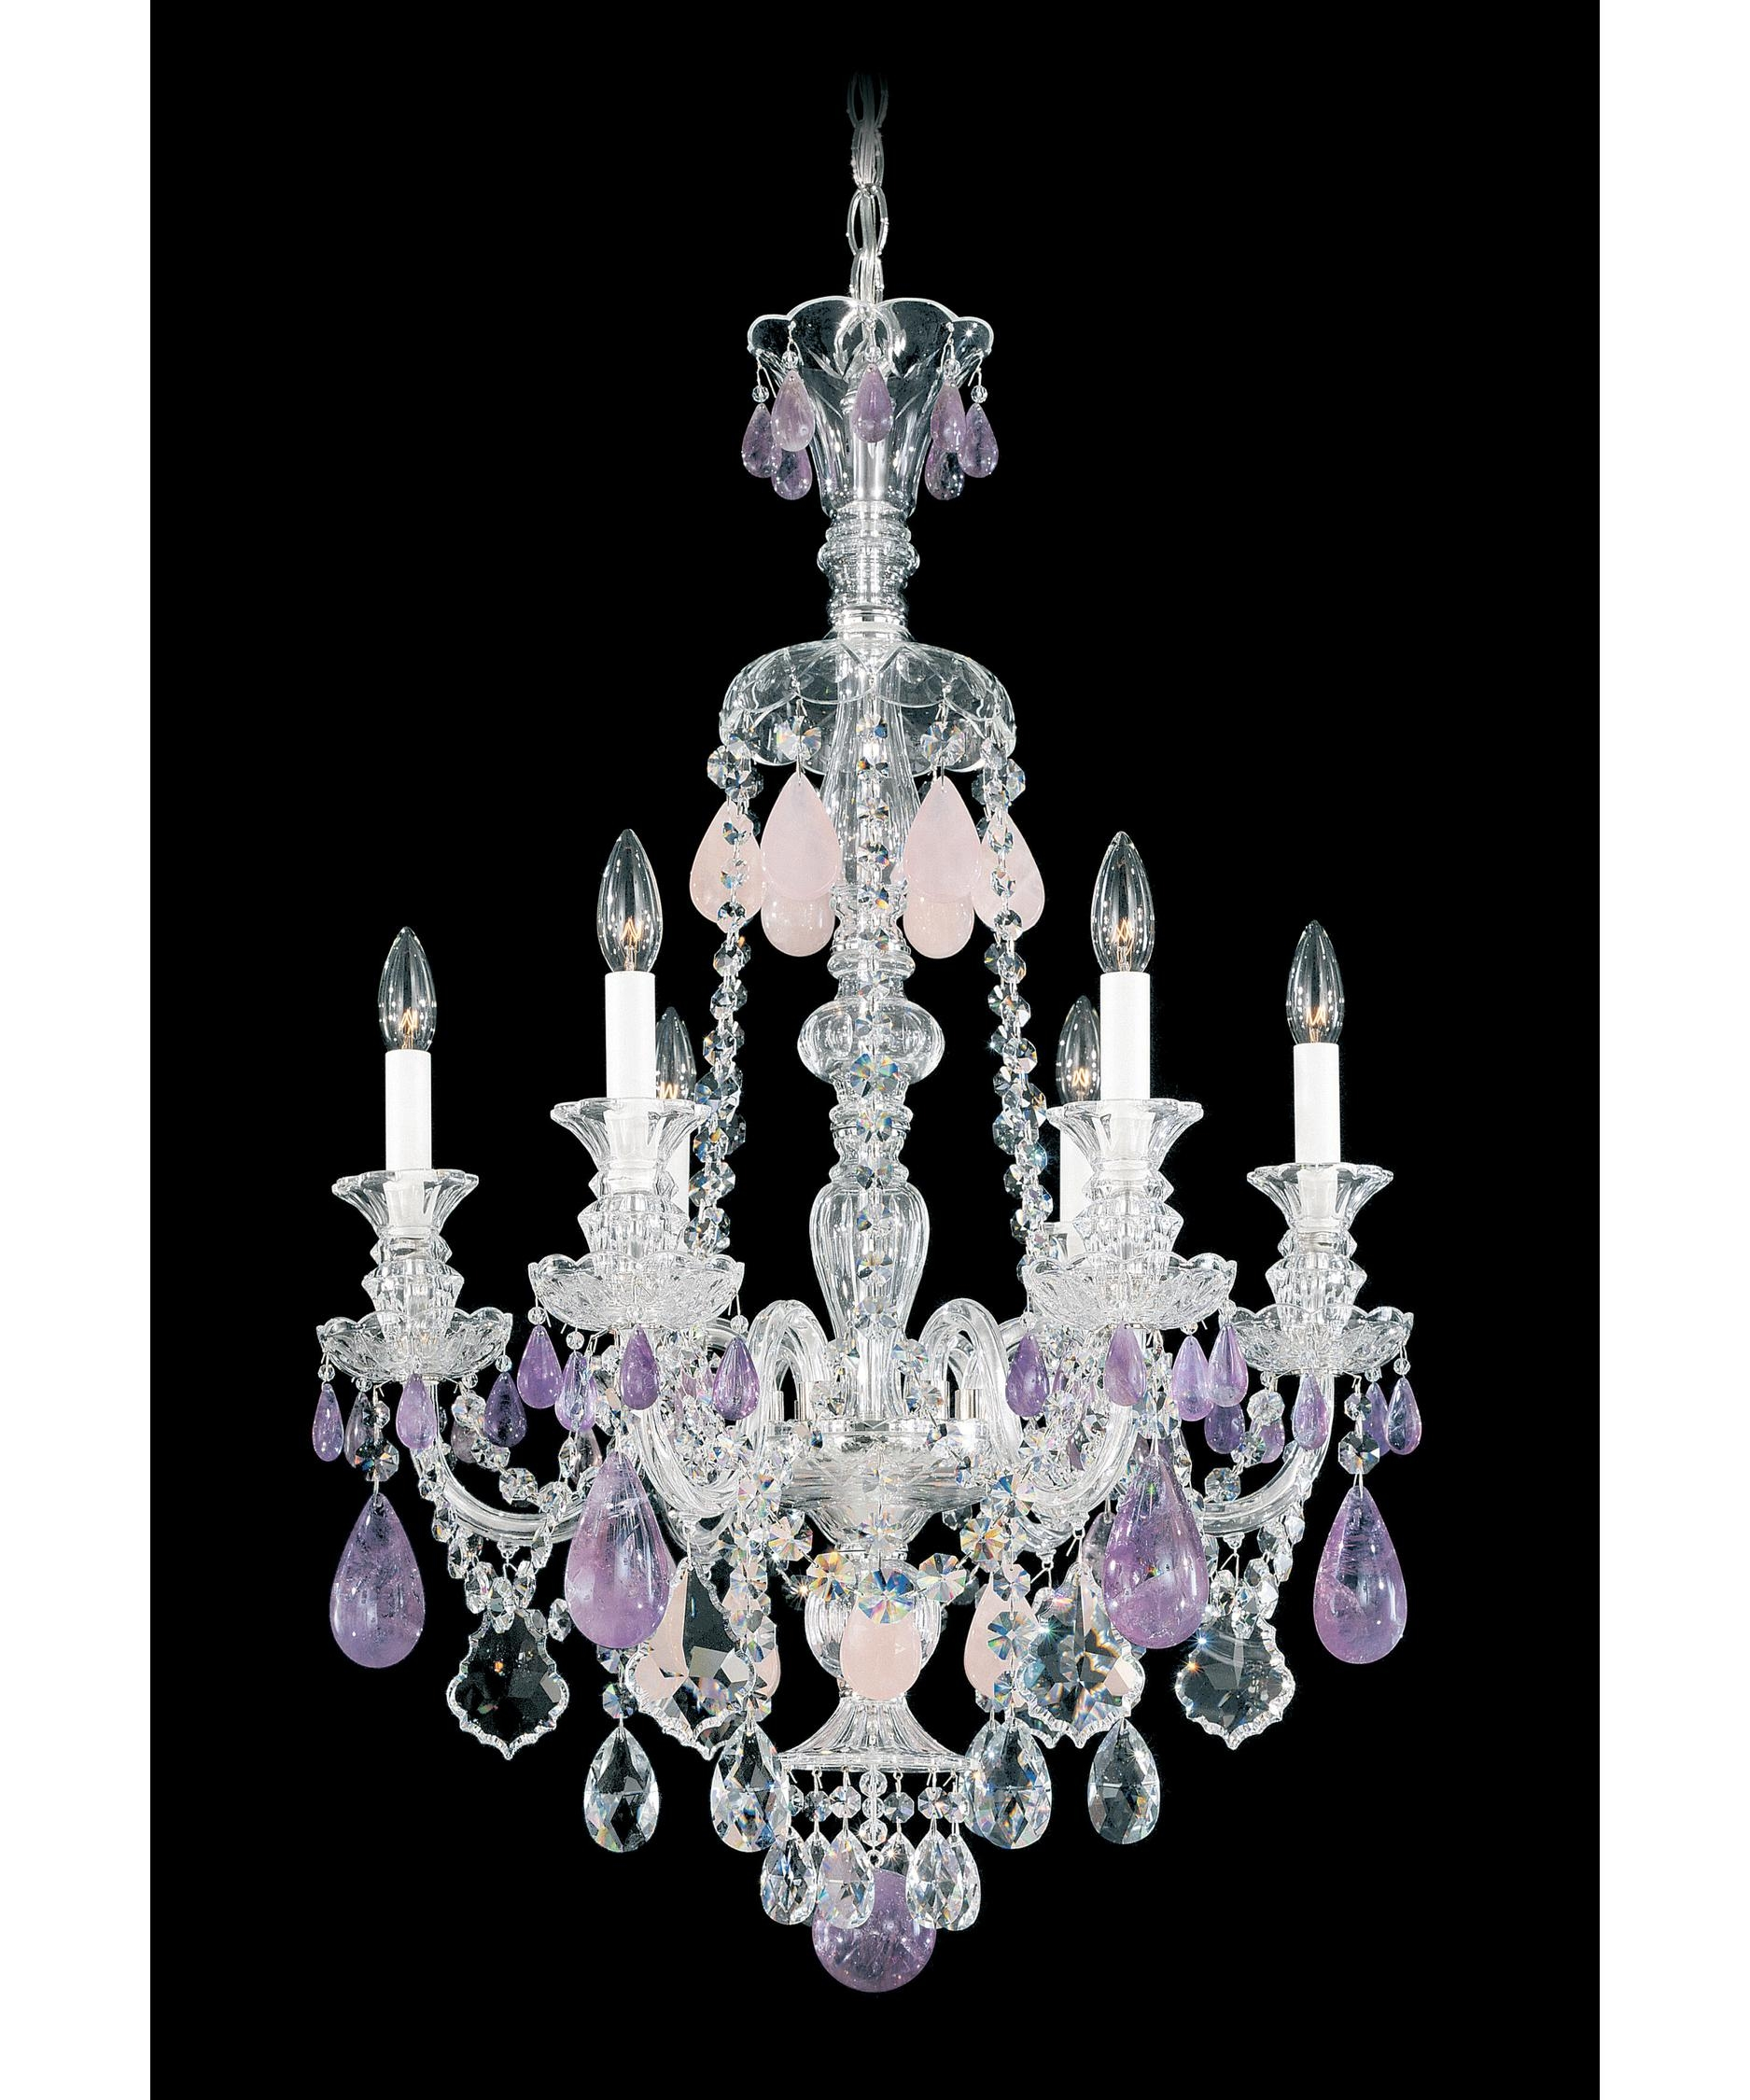 Schonbek 5505 Hamilton Rock Crystal 22 Inch Wide 6 Light Throughout Purple Crystal Chandelier Lights (Image 21 of 25)